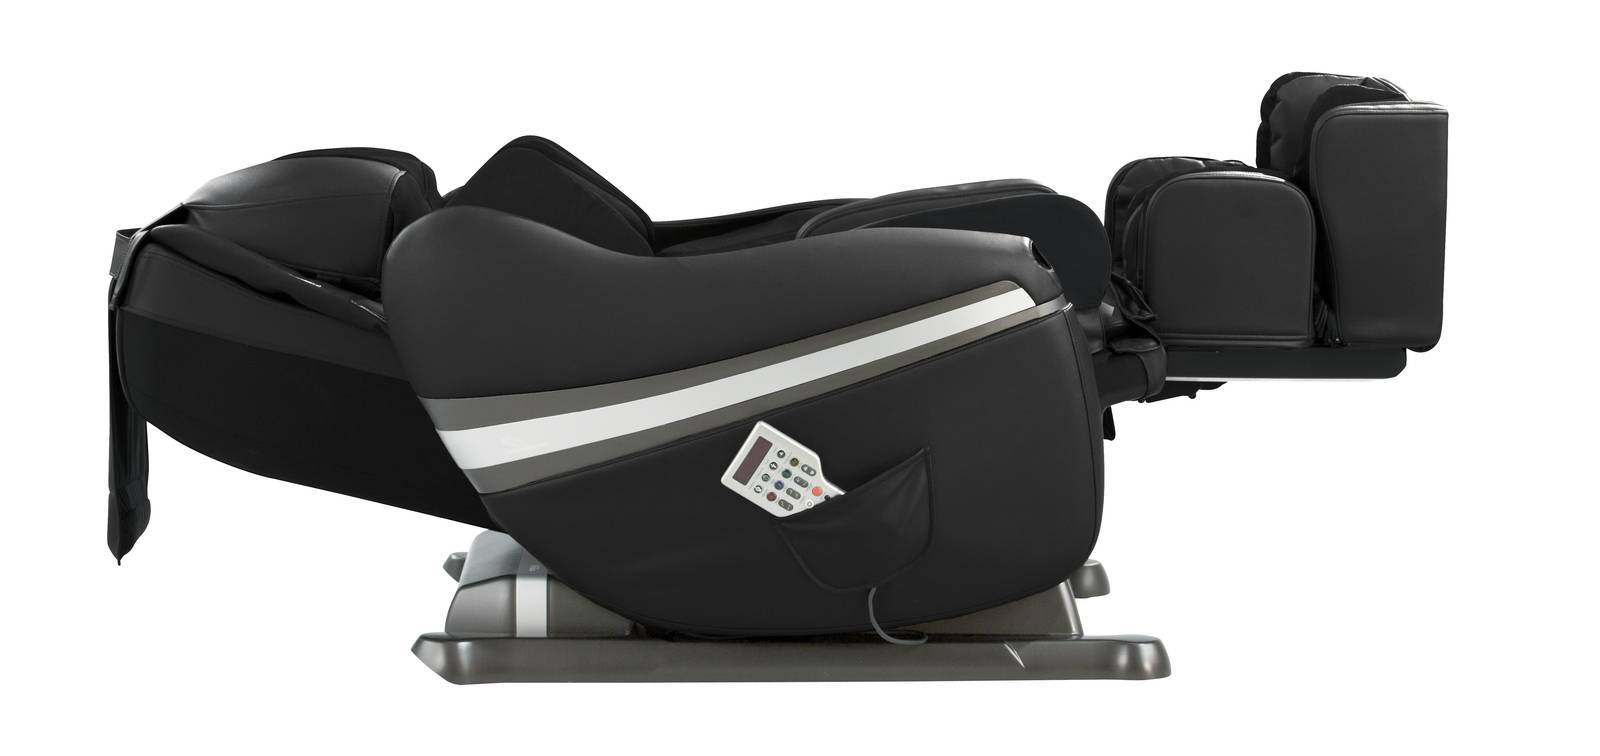 inada dreamwave massage chair (previously known as sogno dreamwave)